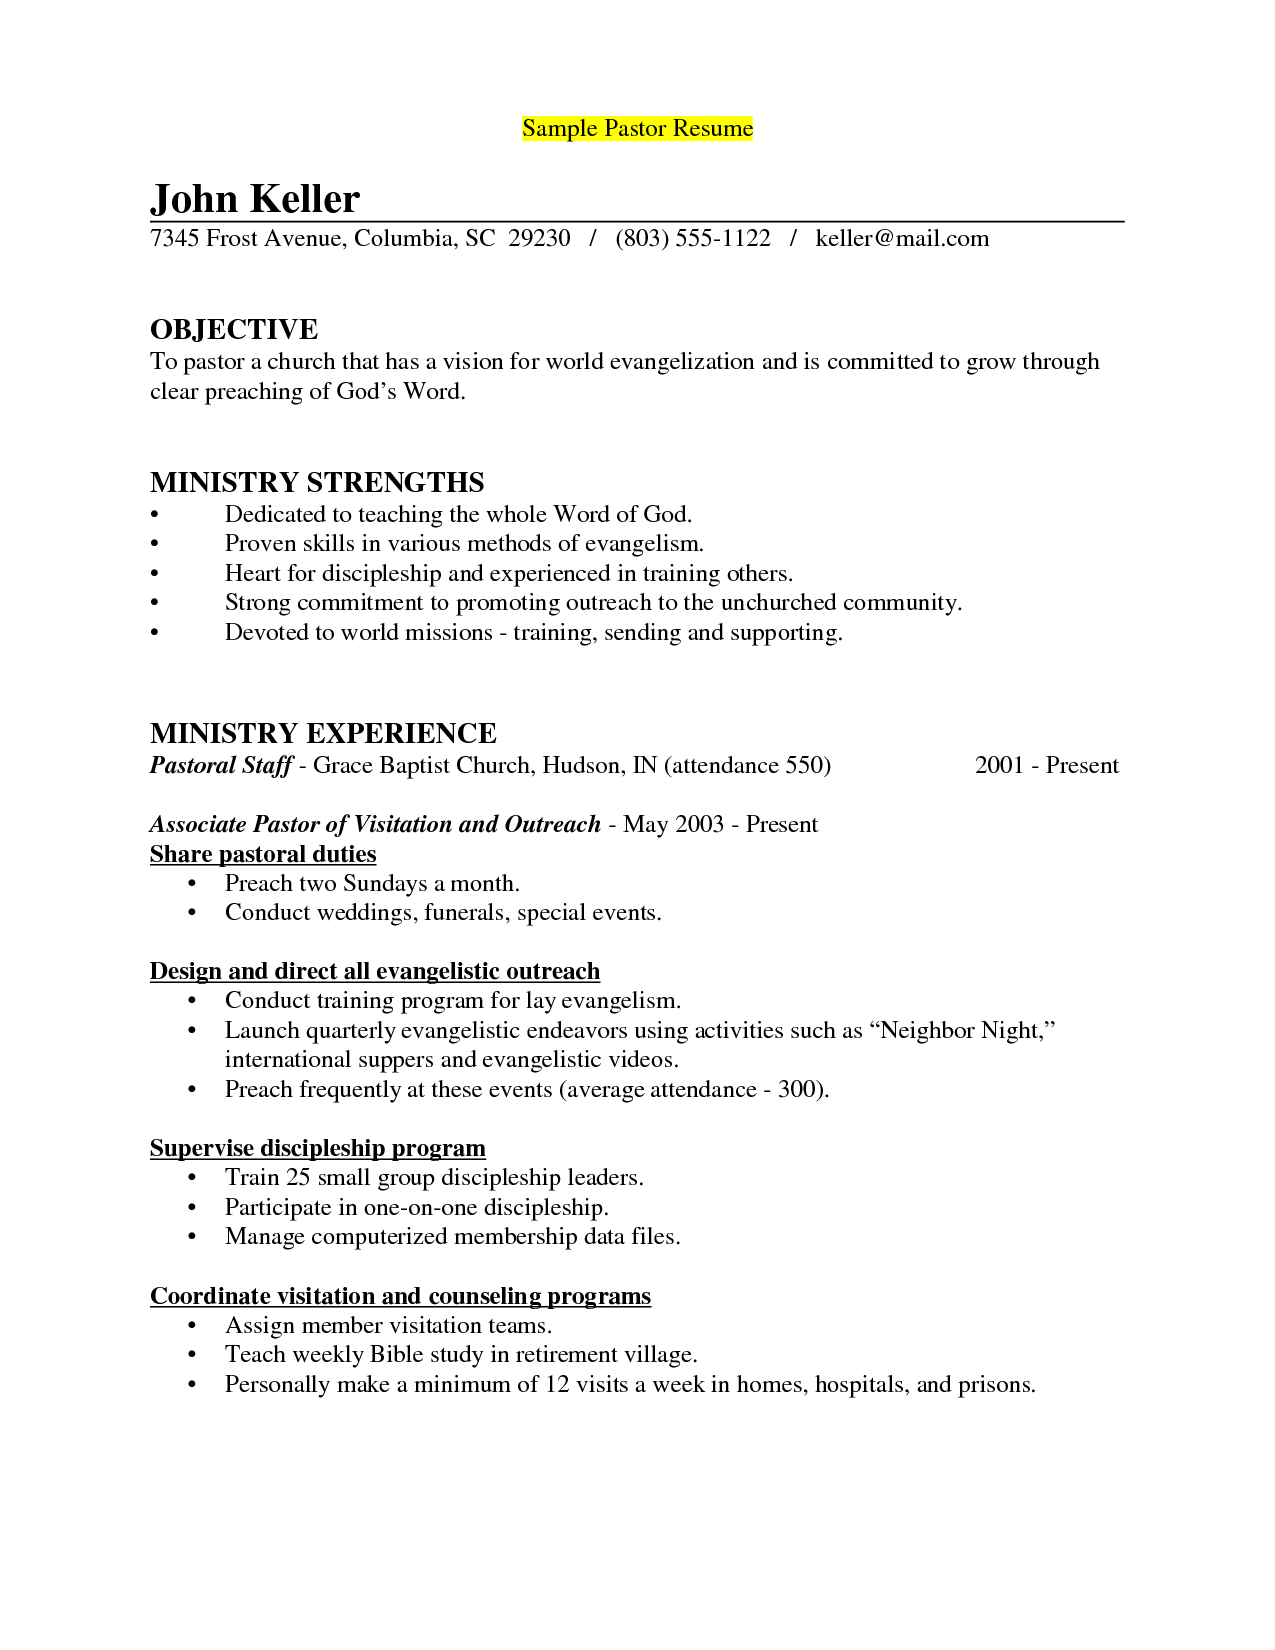 Superb Sample Of A Pastors Resume | Sample Resumes For Senior Pastors And Pastor Resume Samples